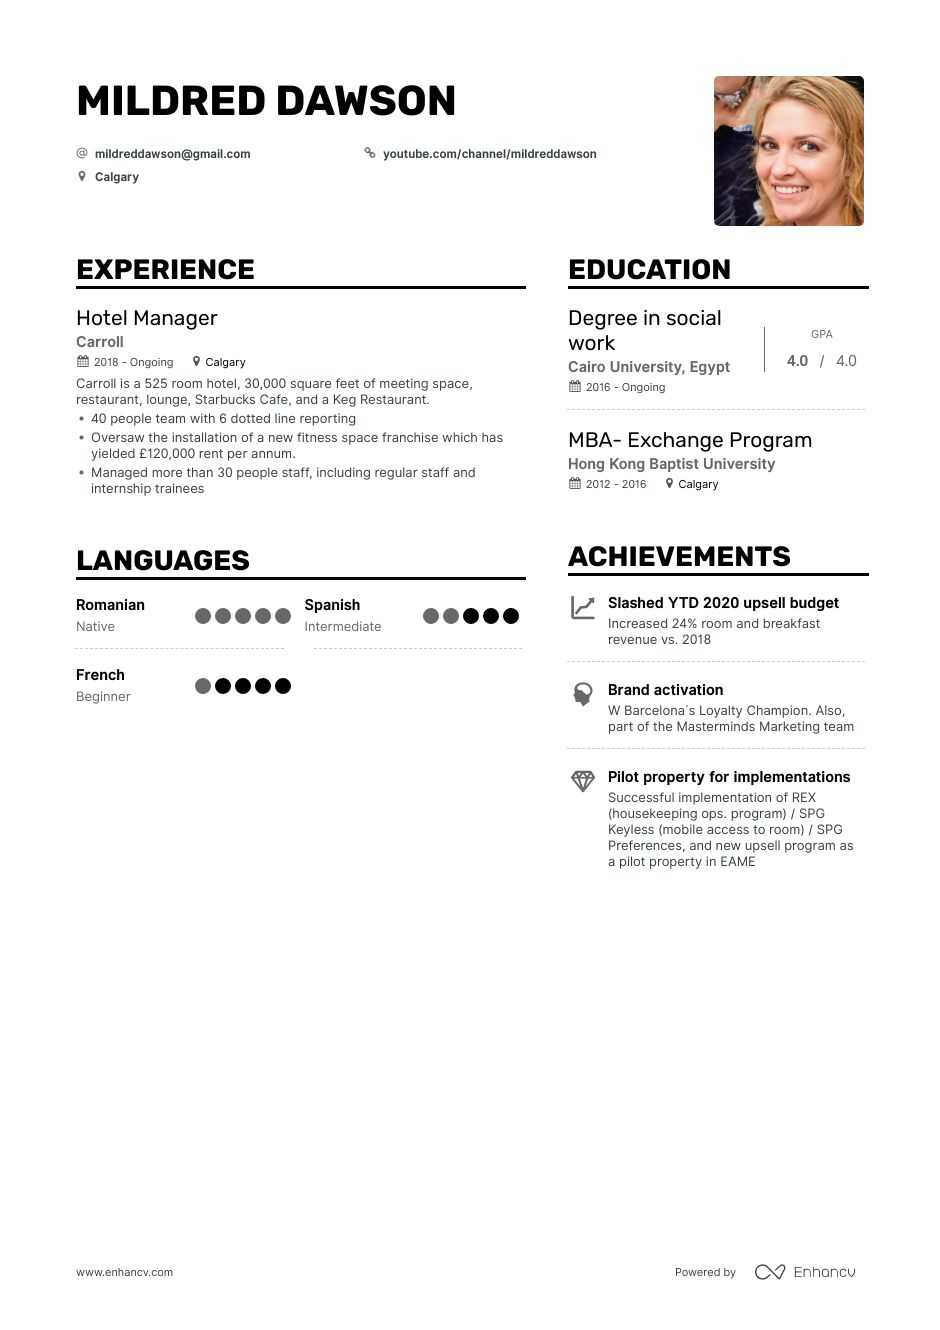 Top Hotel Manager Resume Examples & Samples for 2021 ...